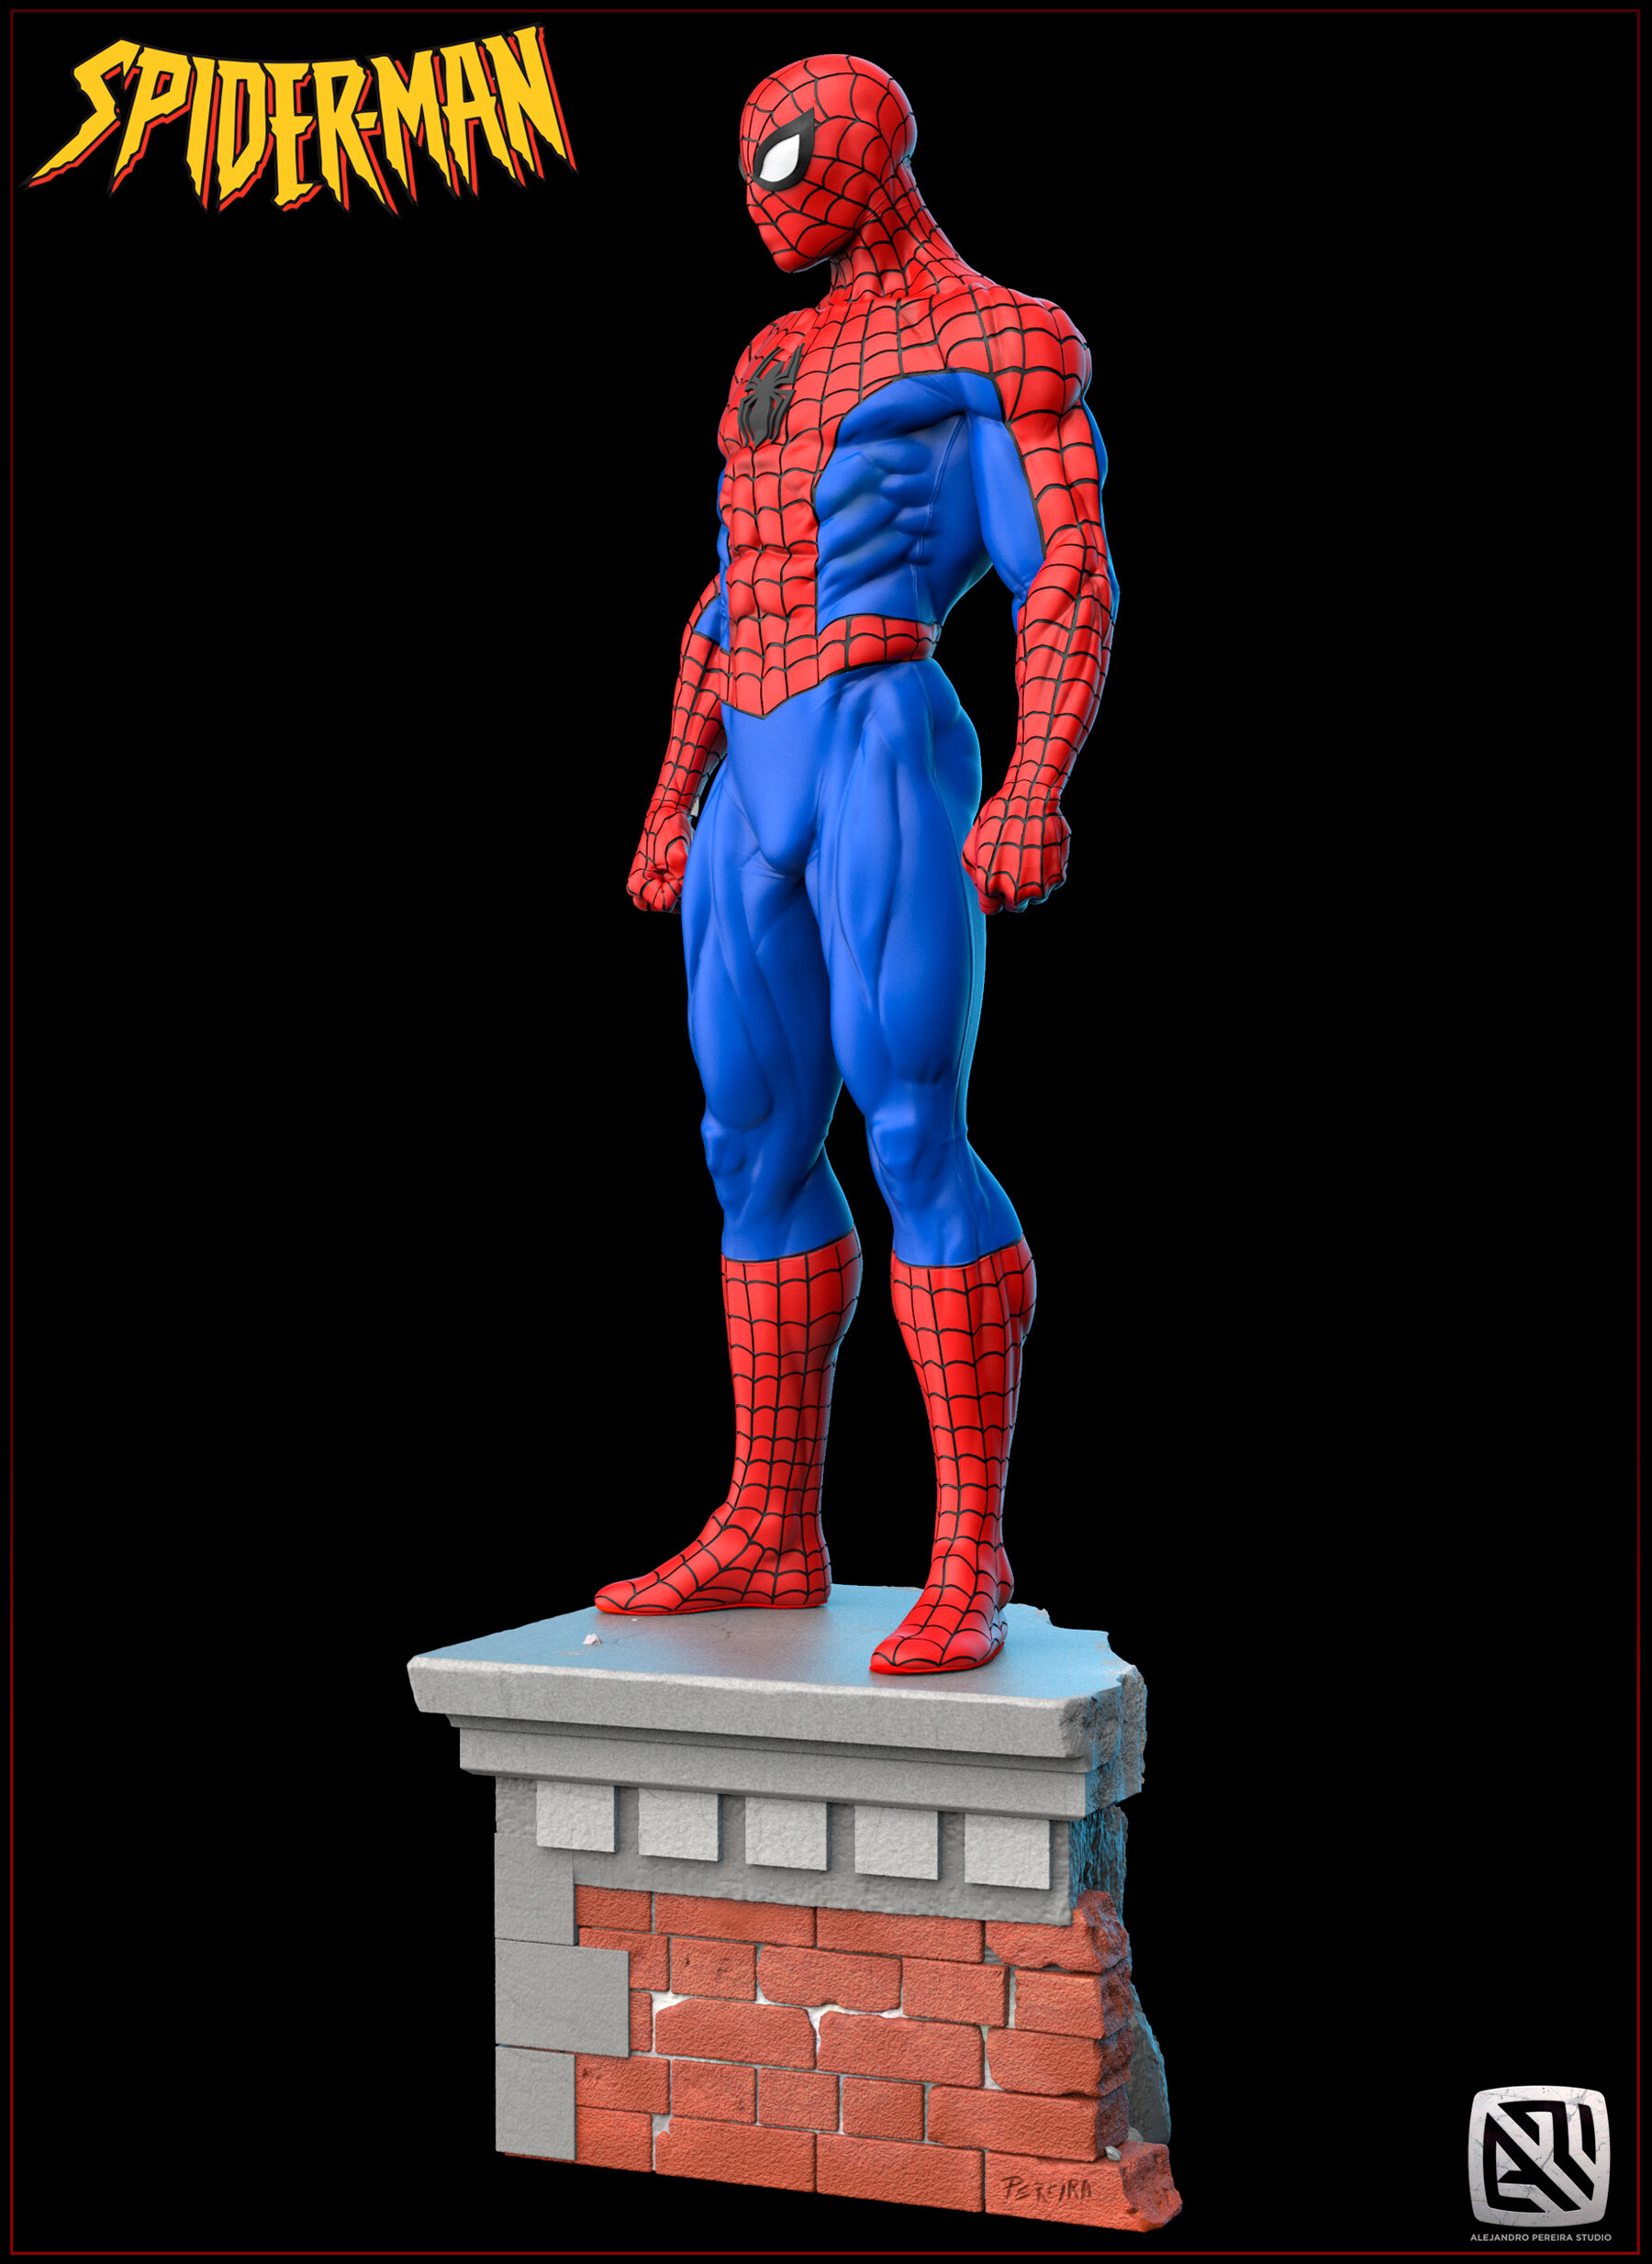 Alejandro pereira spidey render color 03